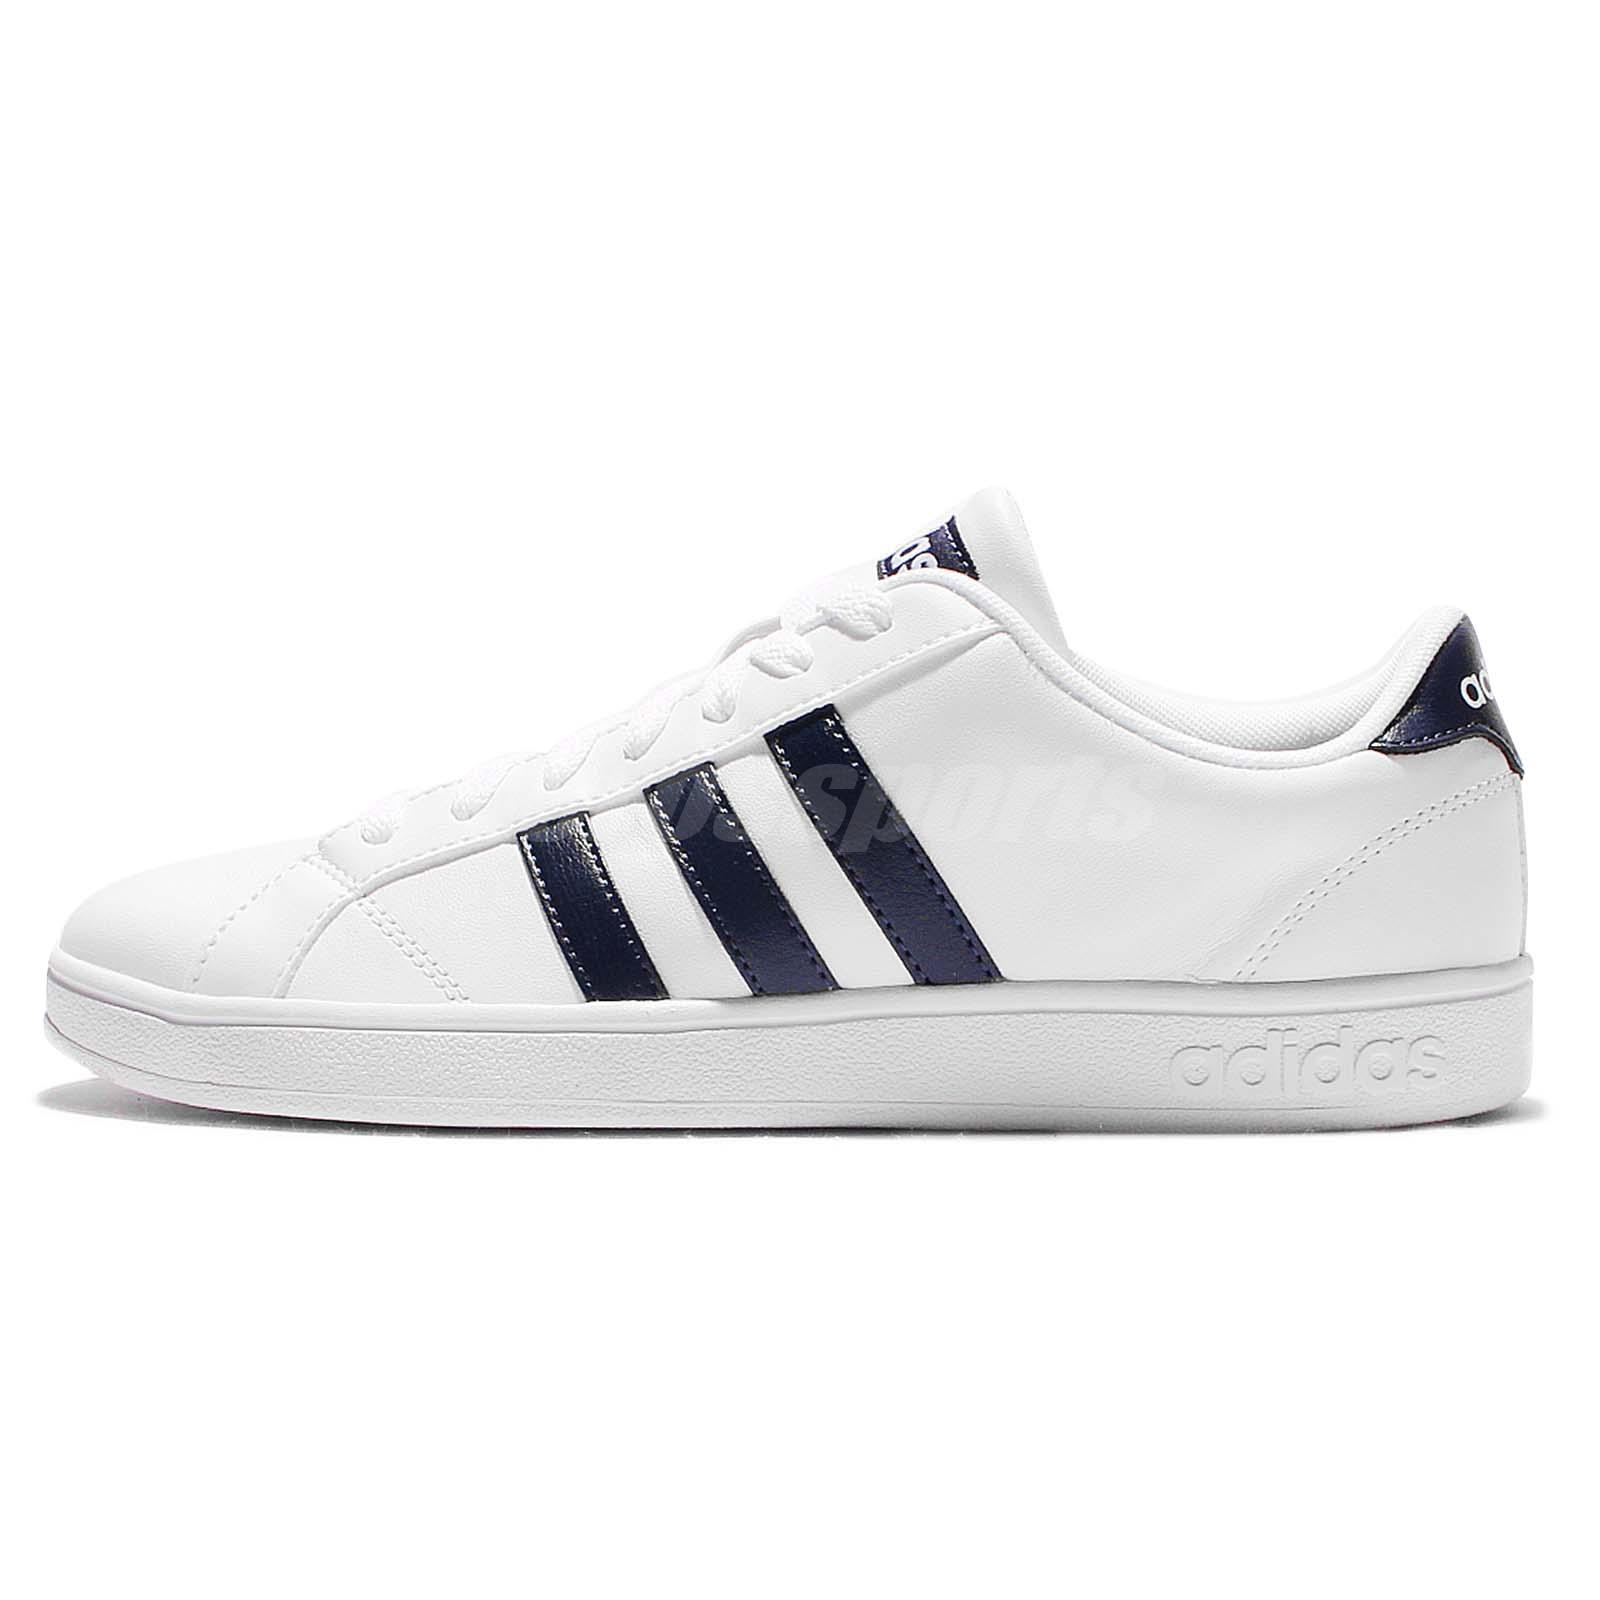 adidas neo label baseline white navy mens casual shoes. Black Bedroom Furniture Sets. Home Design Ideas